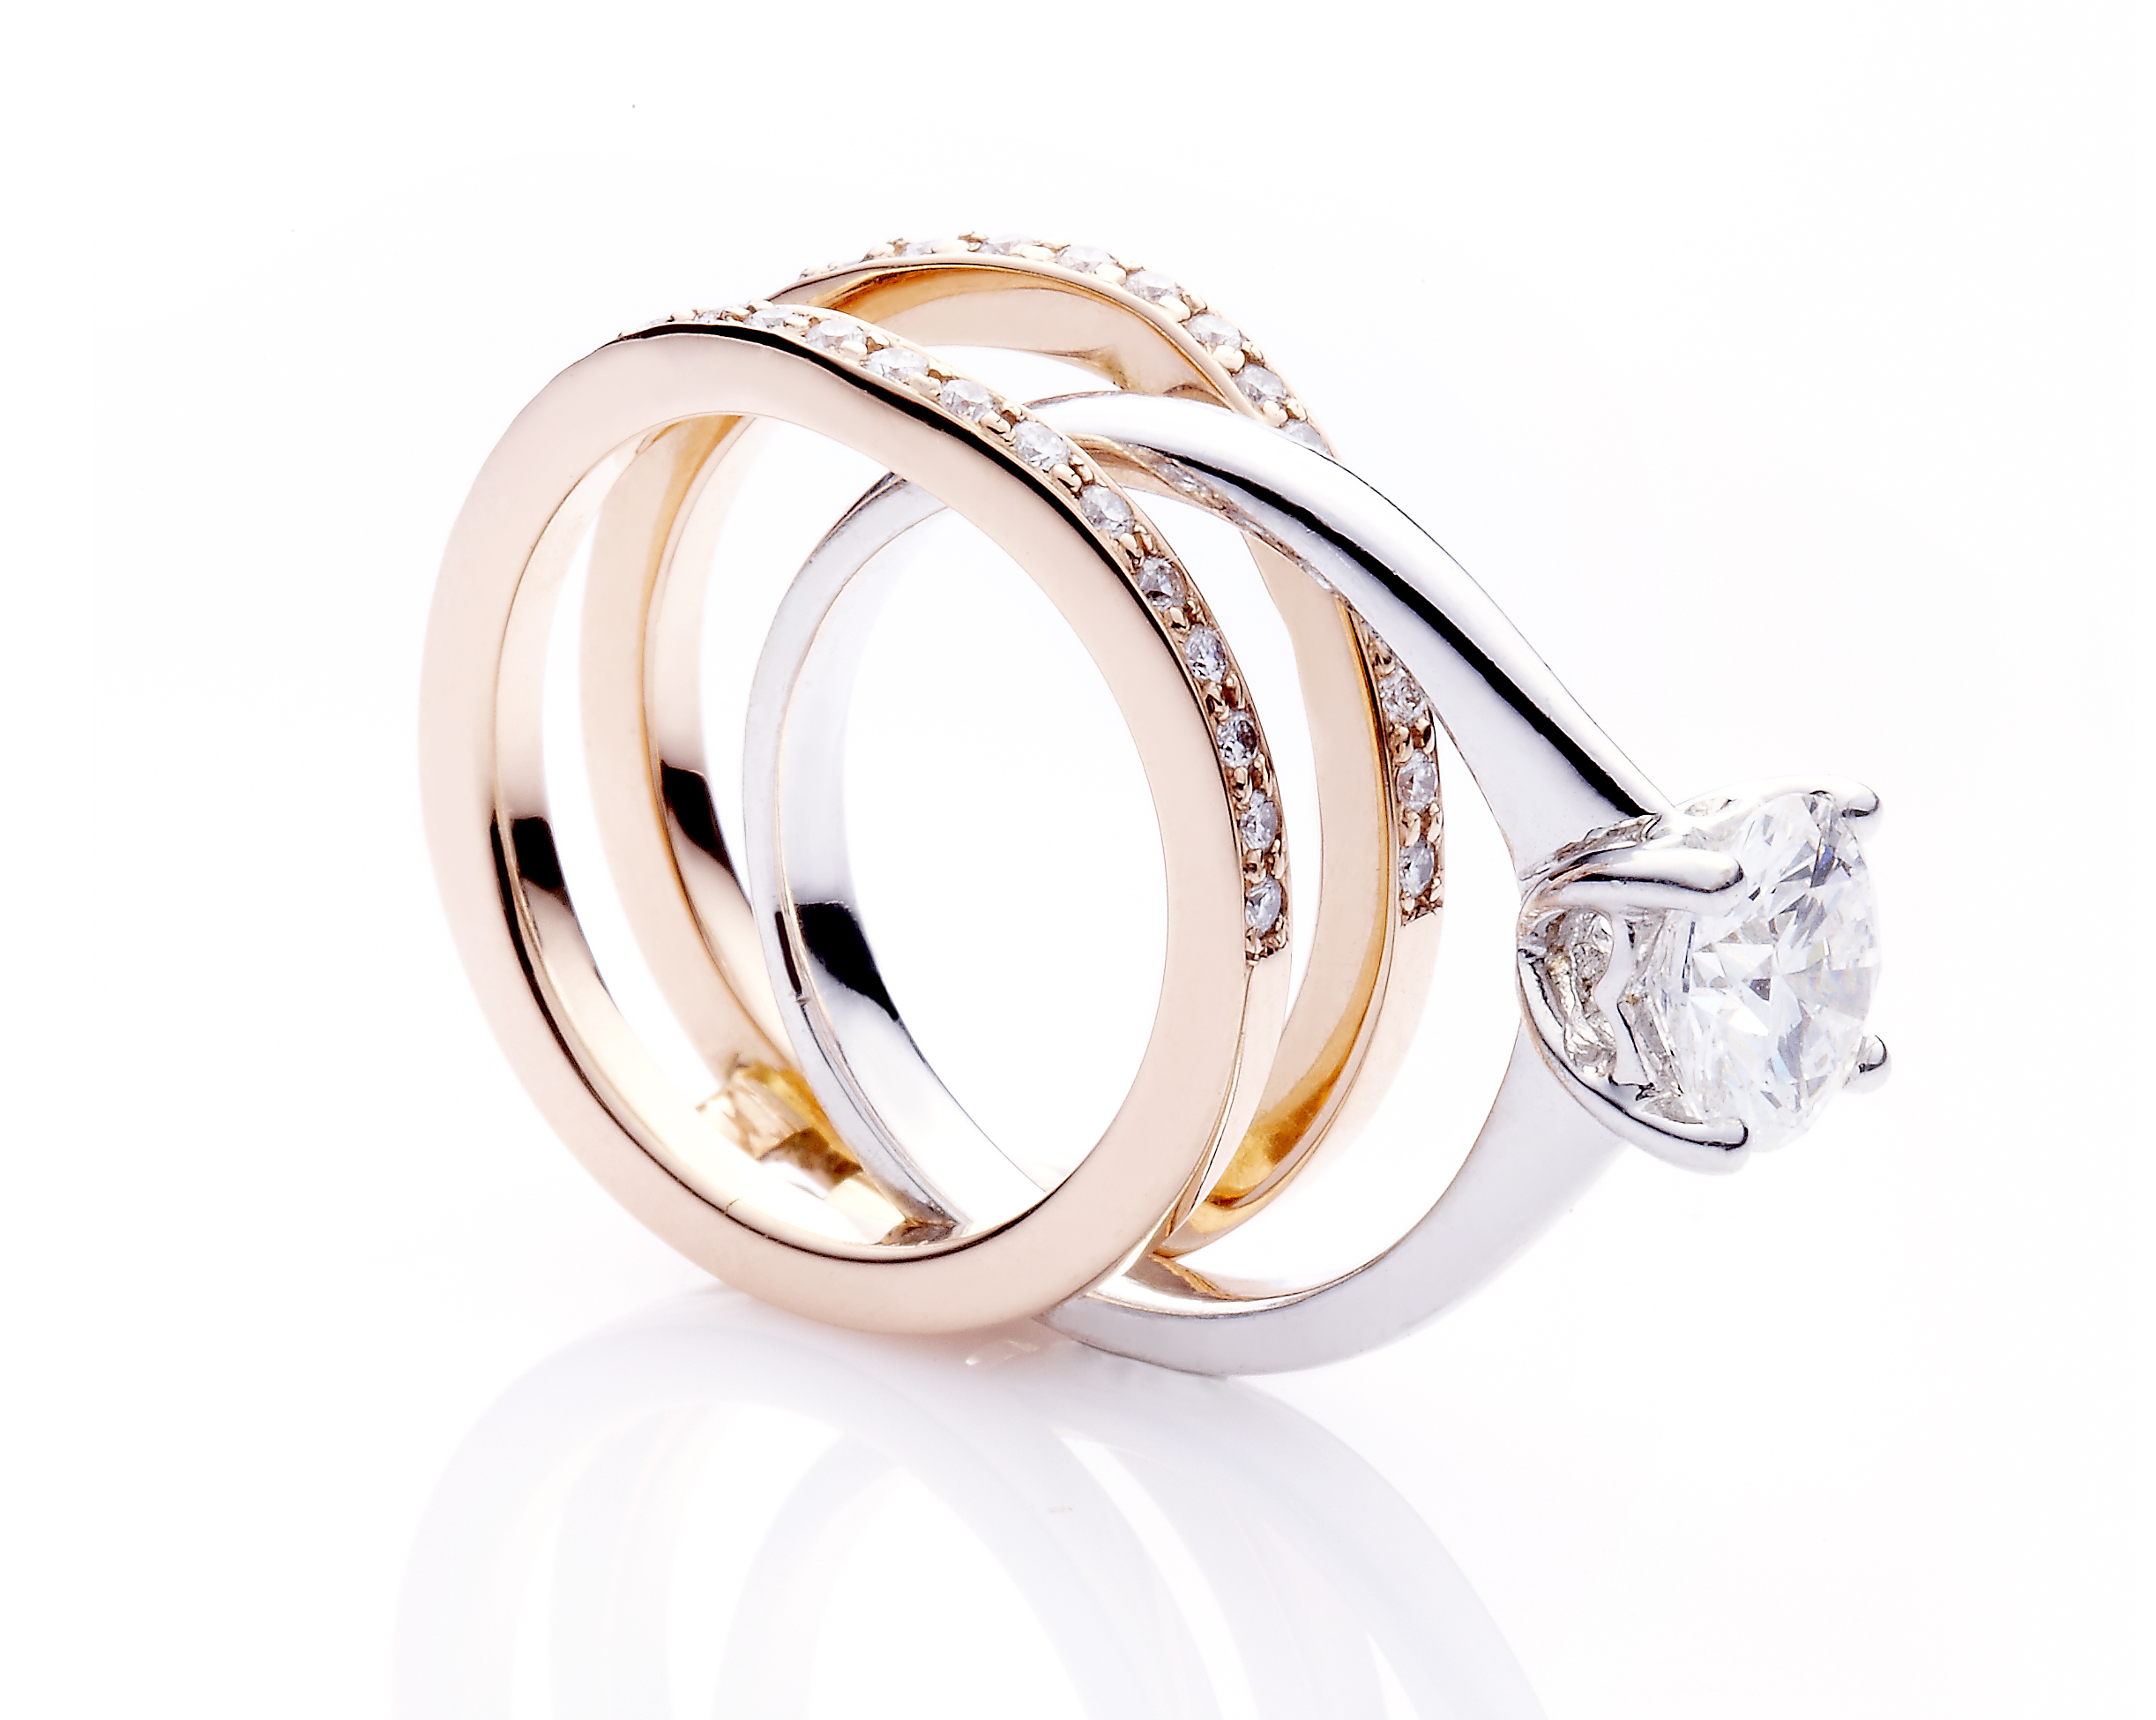 stunning us rings jewellery expose wedding on wifey herself s engagement ring to let the her where get in pin